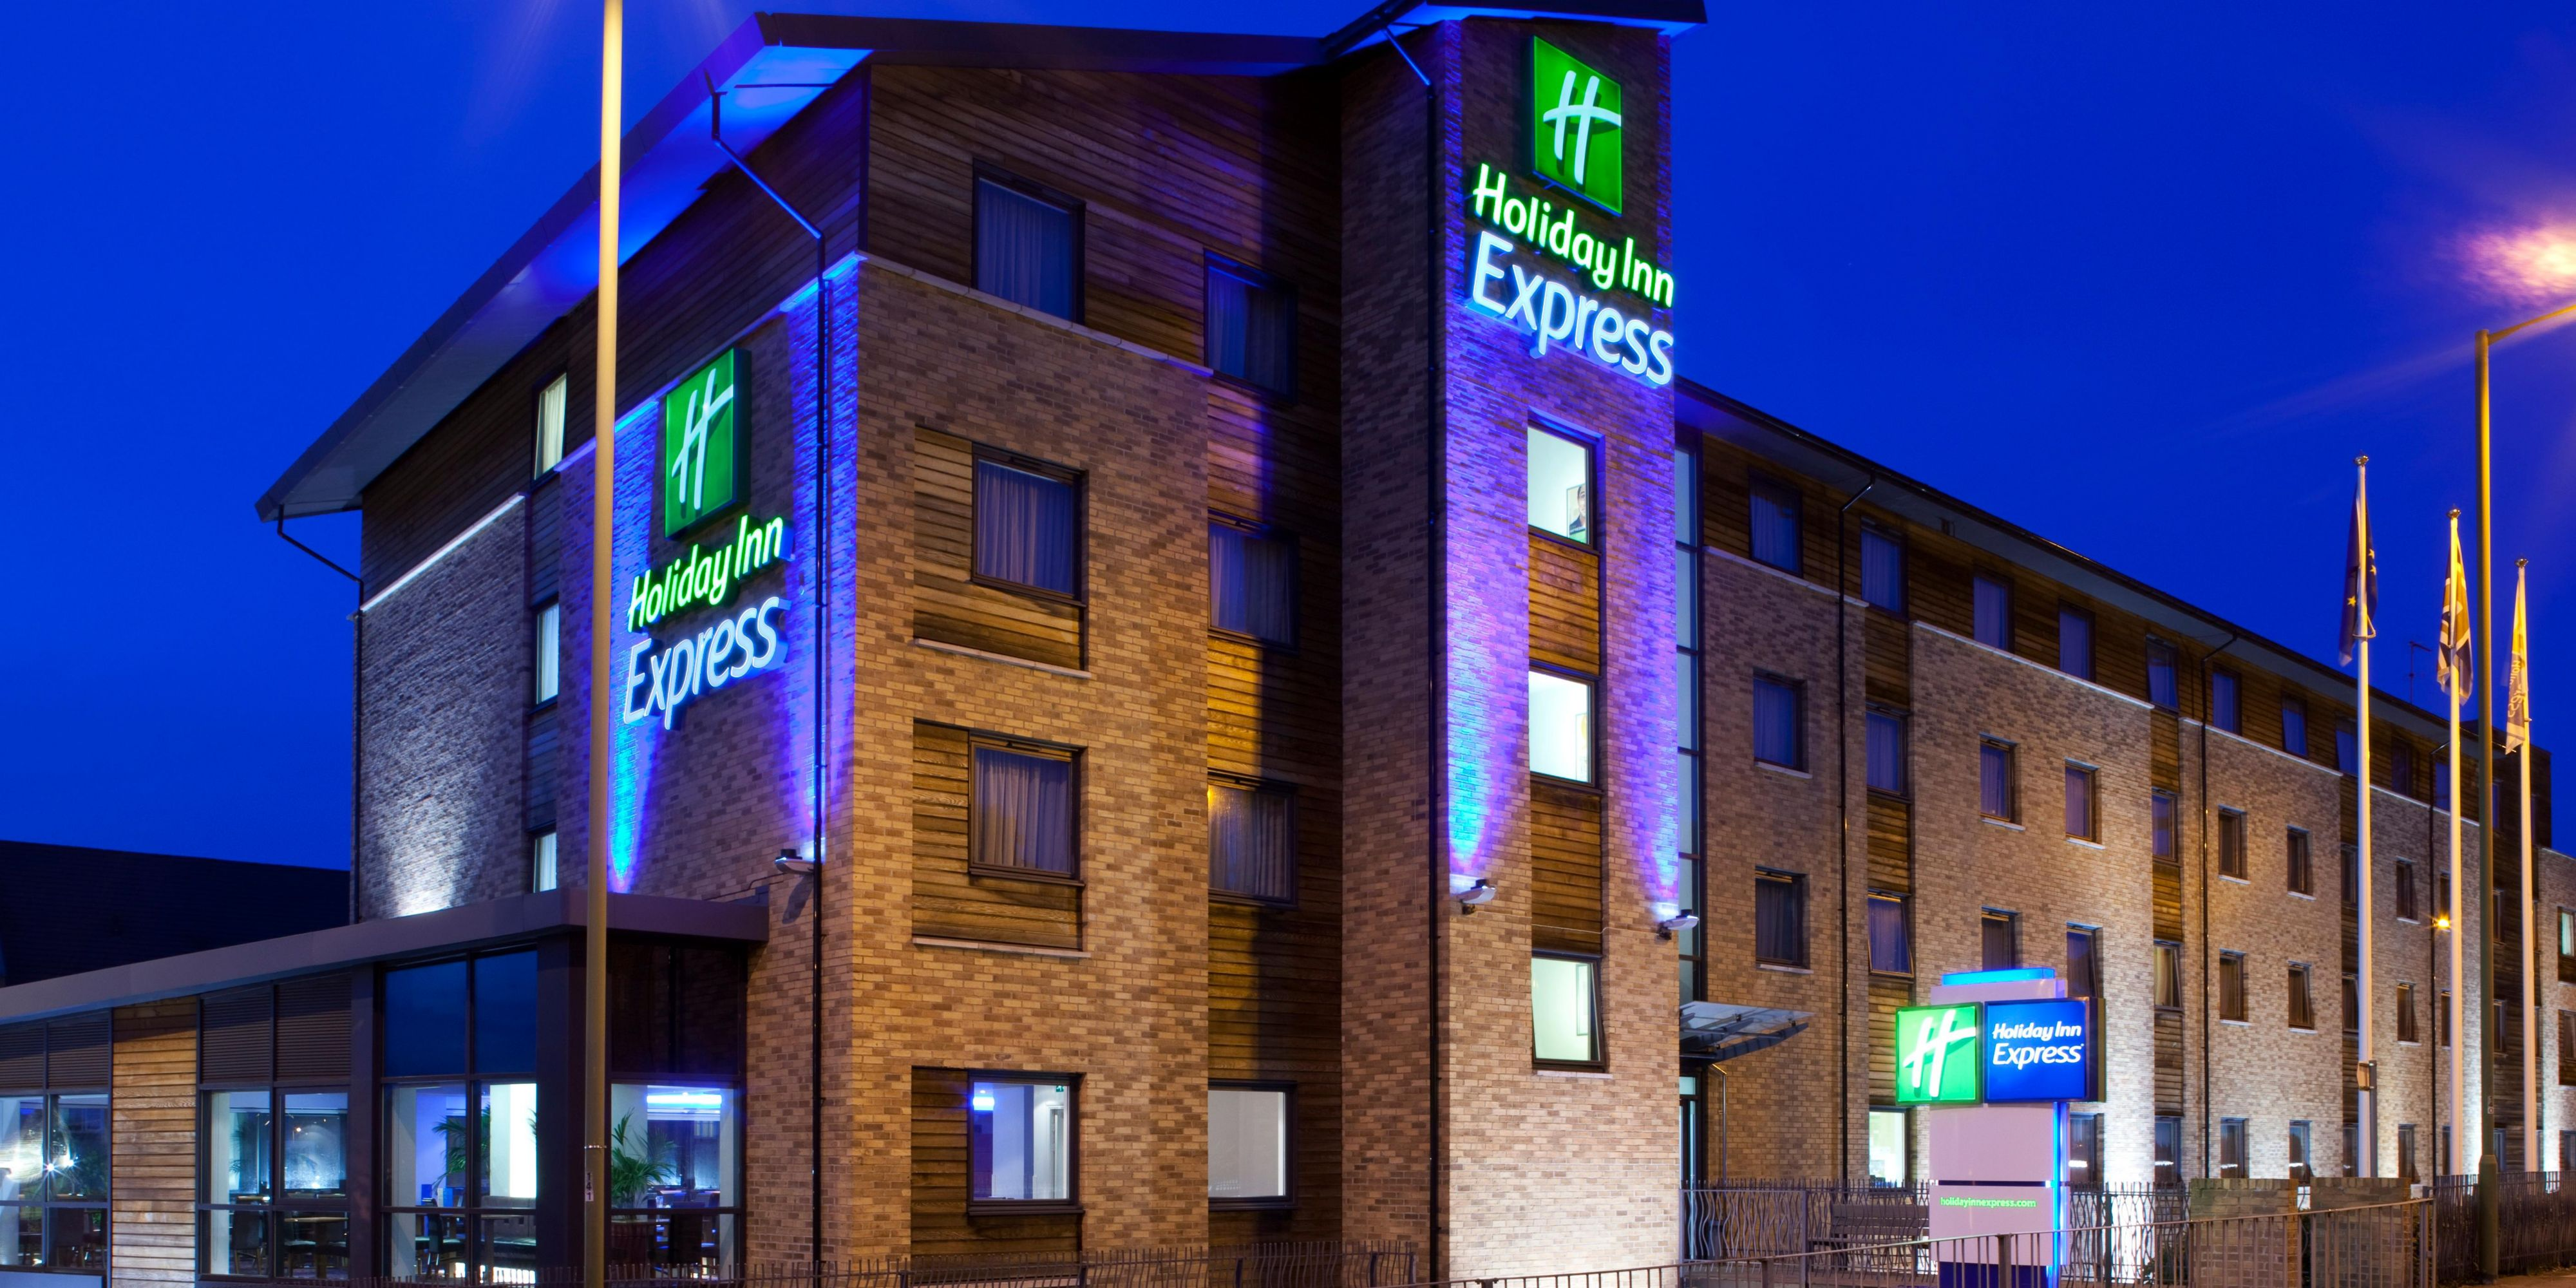 https://ihg.scene7.com/is/image/ihg/holiday-inn-express-hemel-hempstead-2532036261-2x1